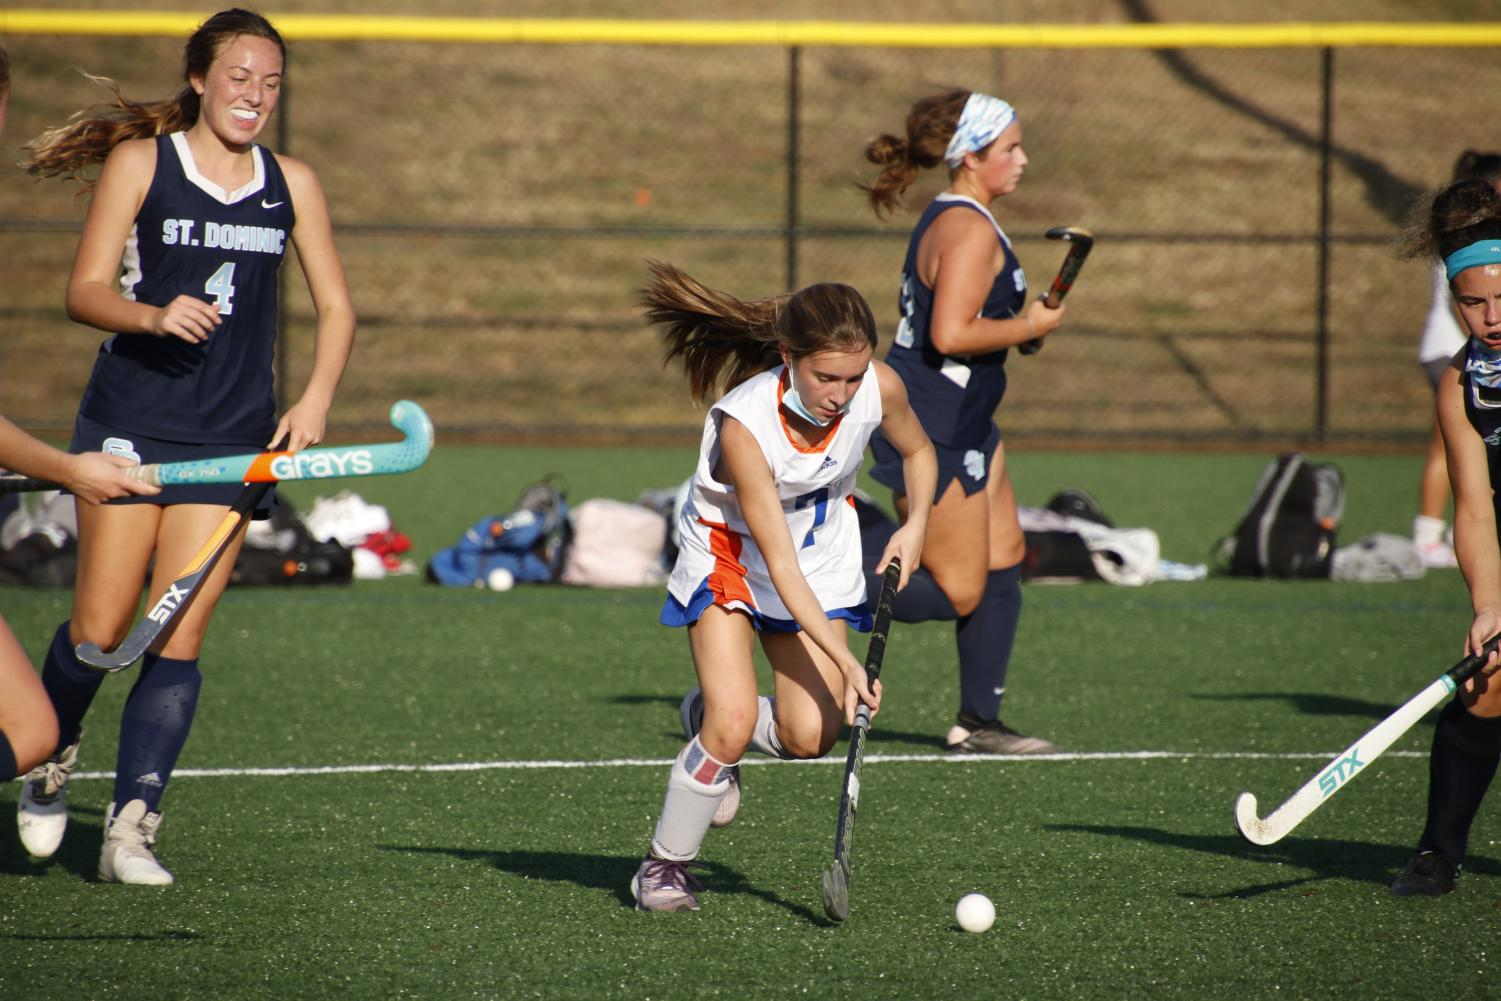 Ruby Nadin dribbles the ball past defenders in a game against St. Dominic